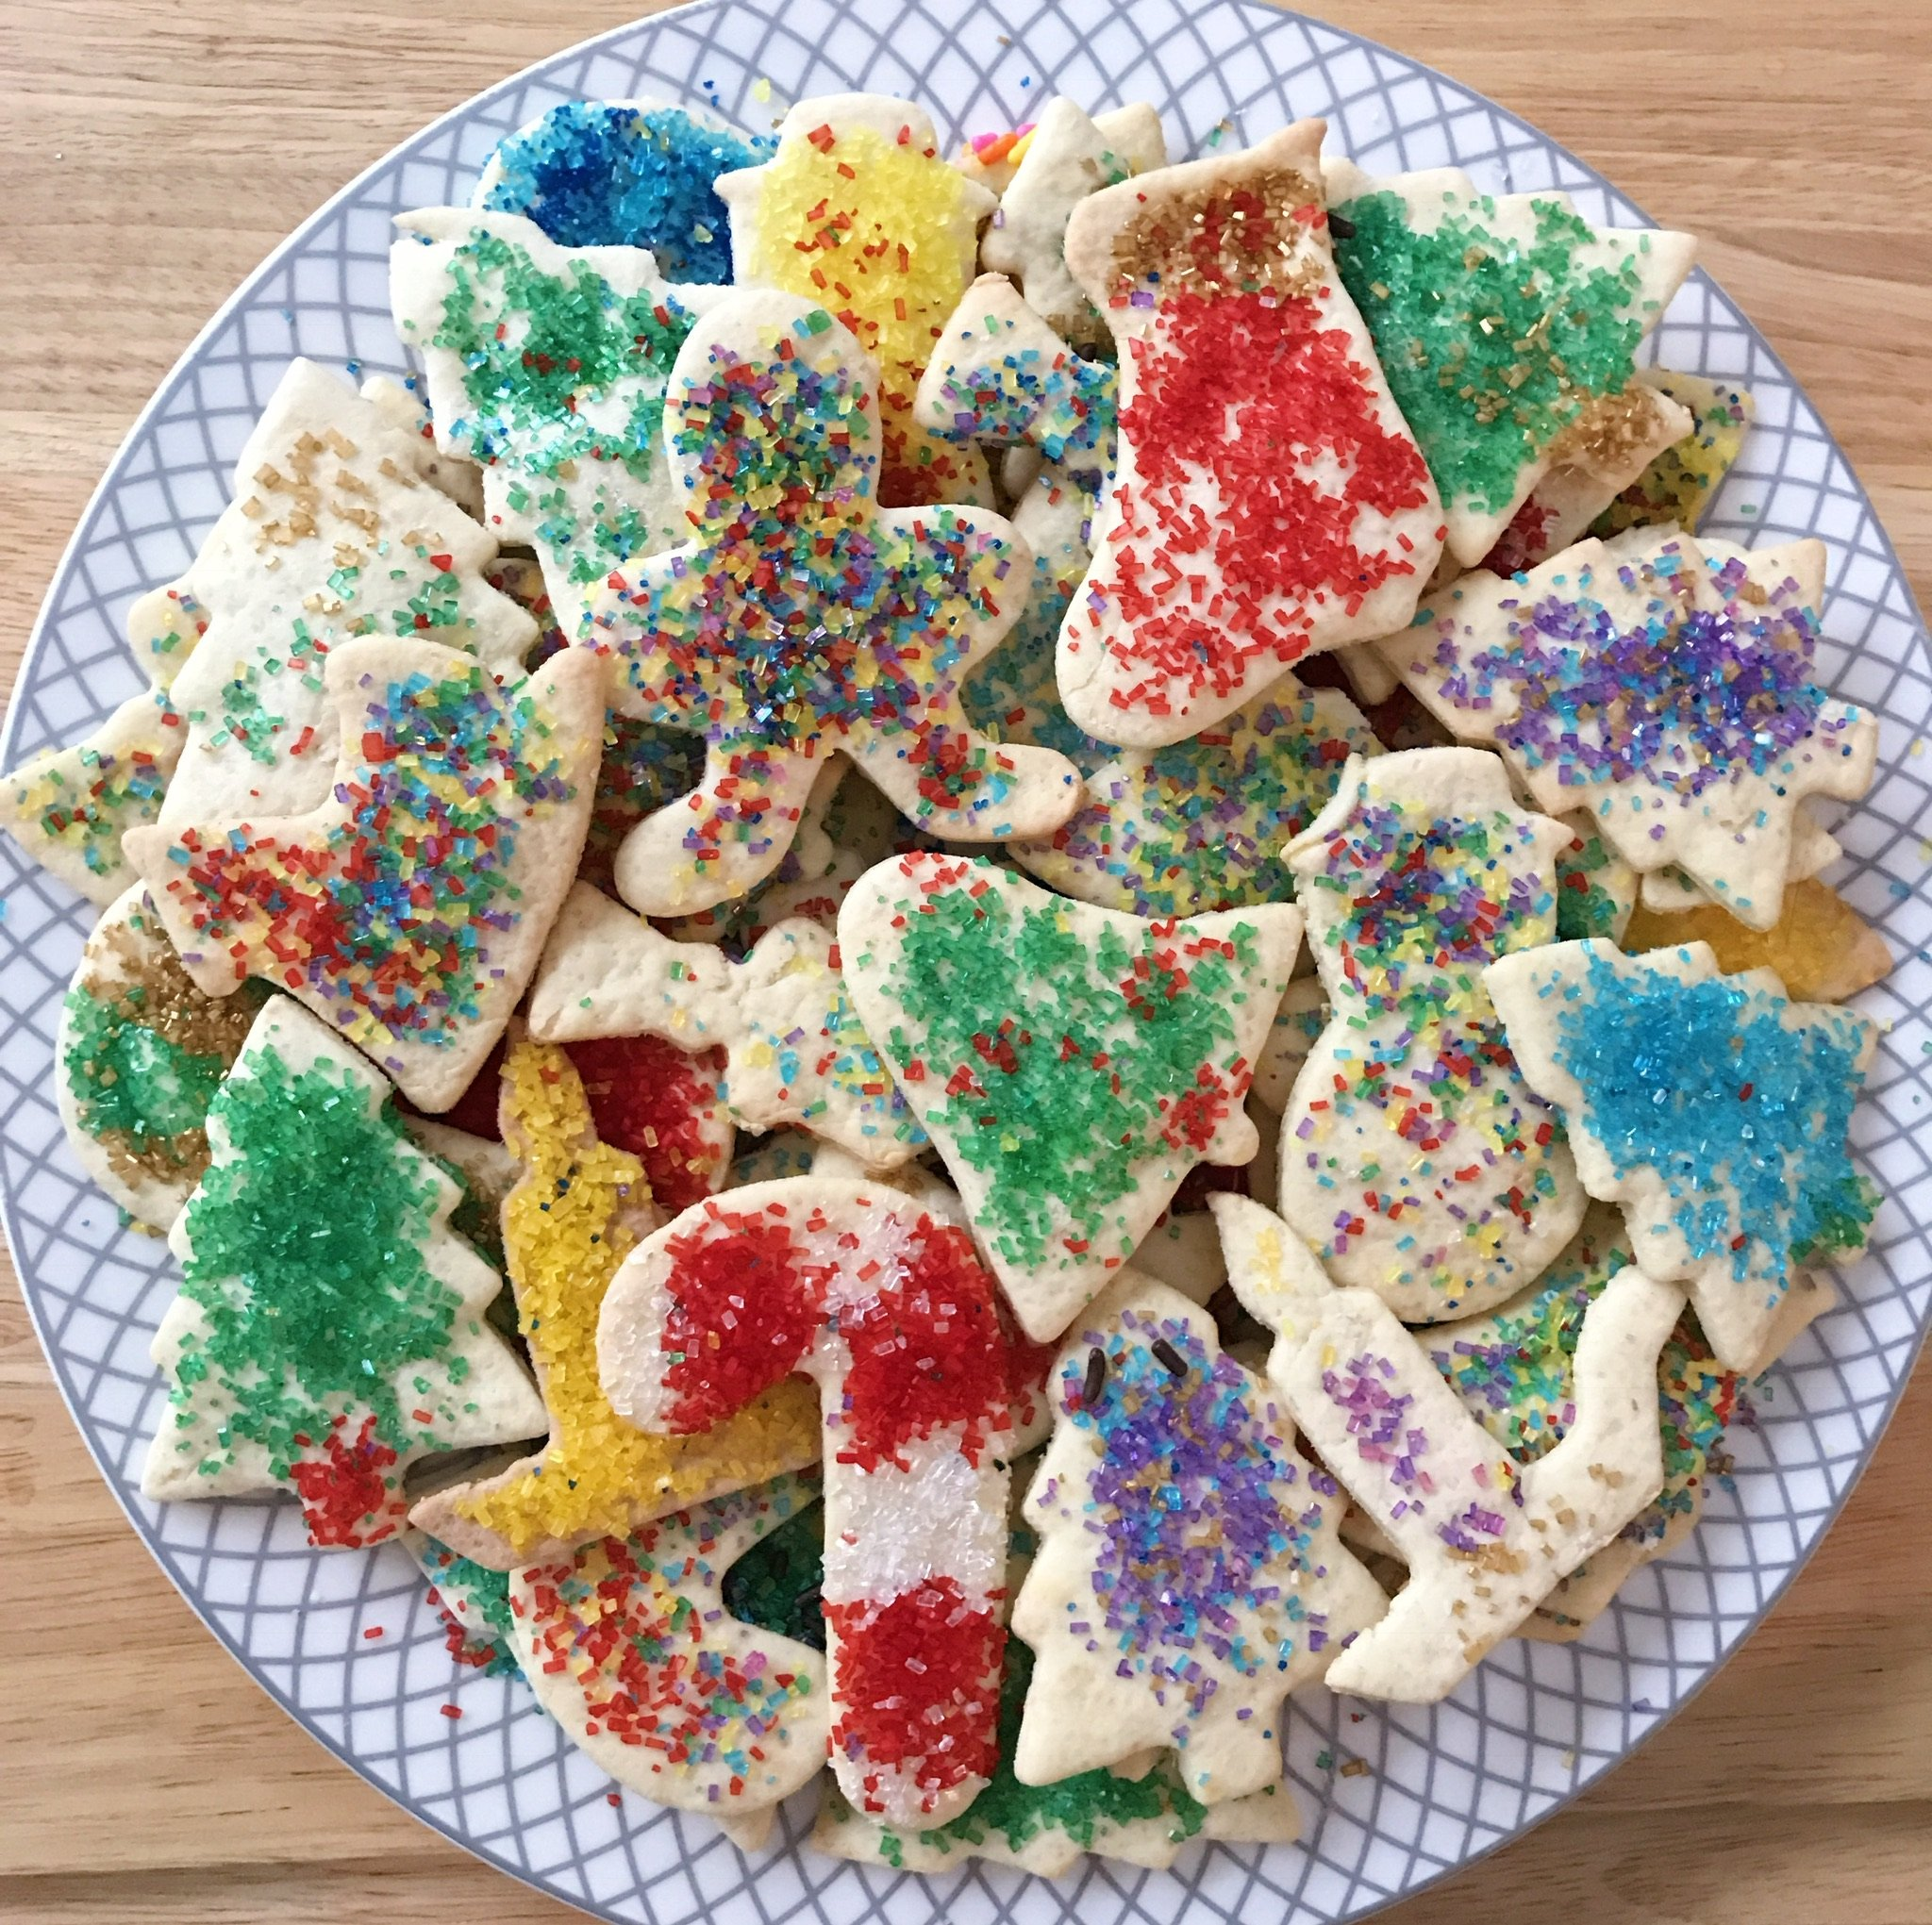 https://www.healthygffamily.com/recipe/sugar-cookies/